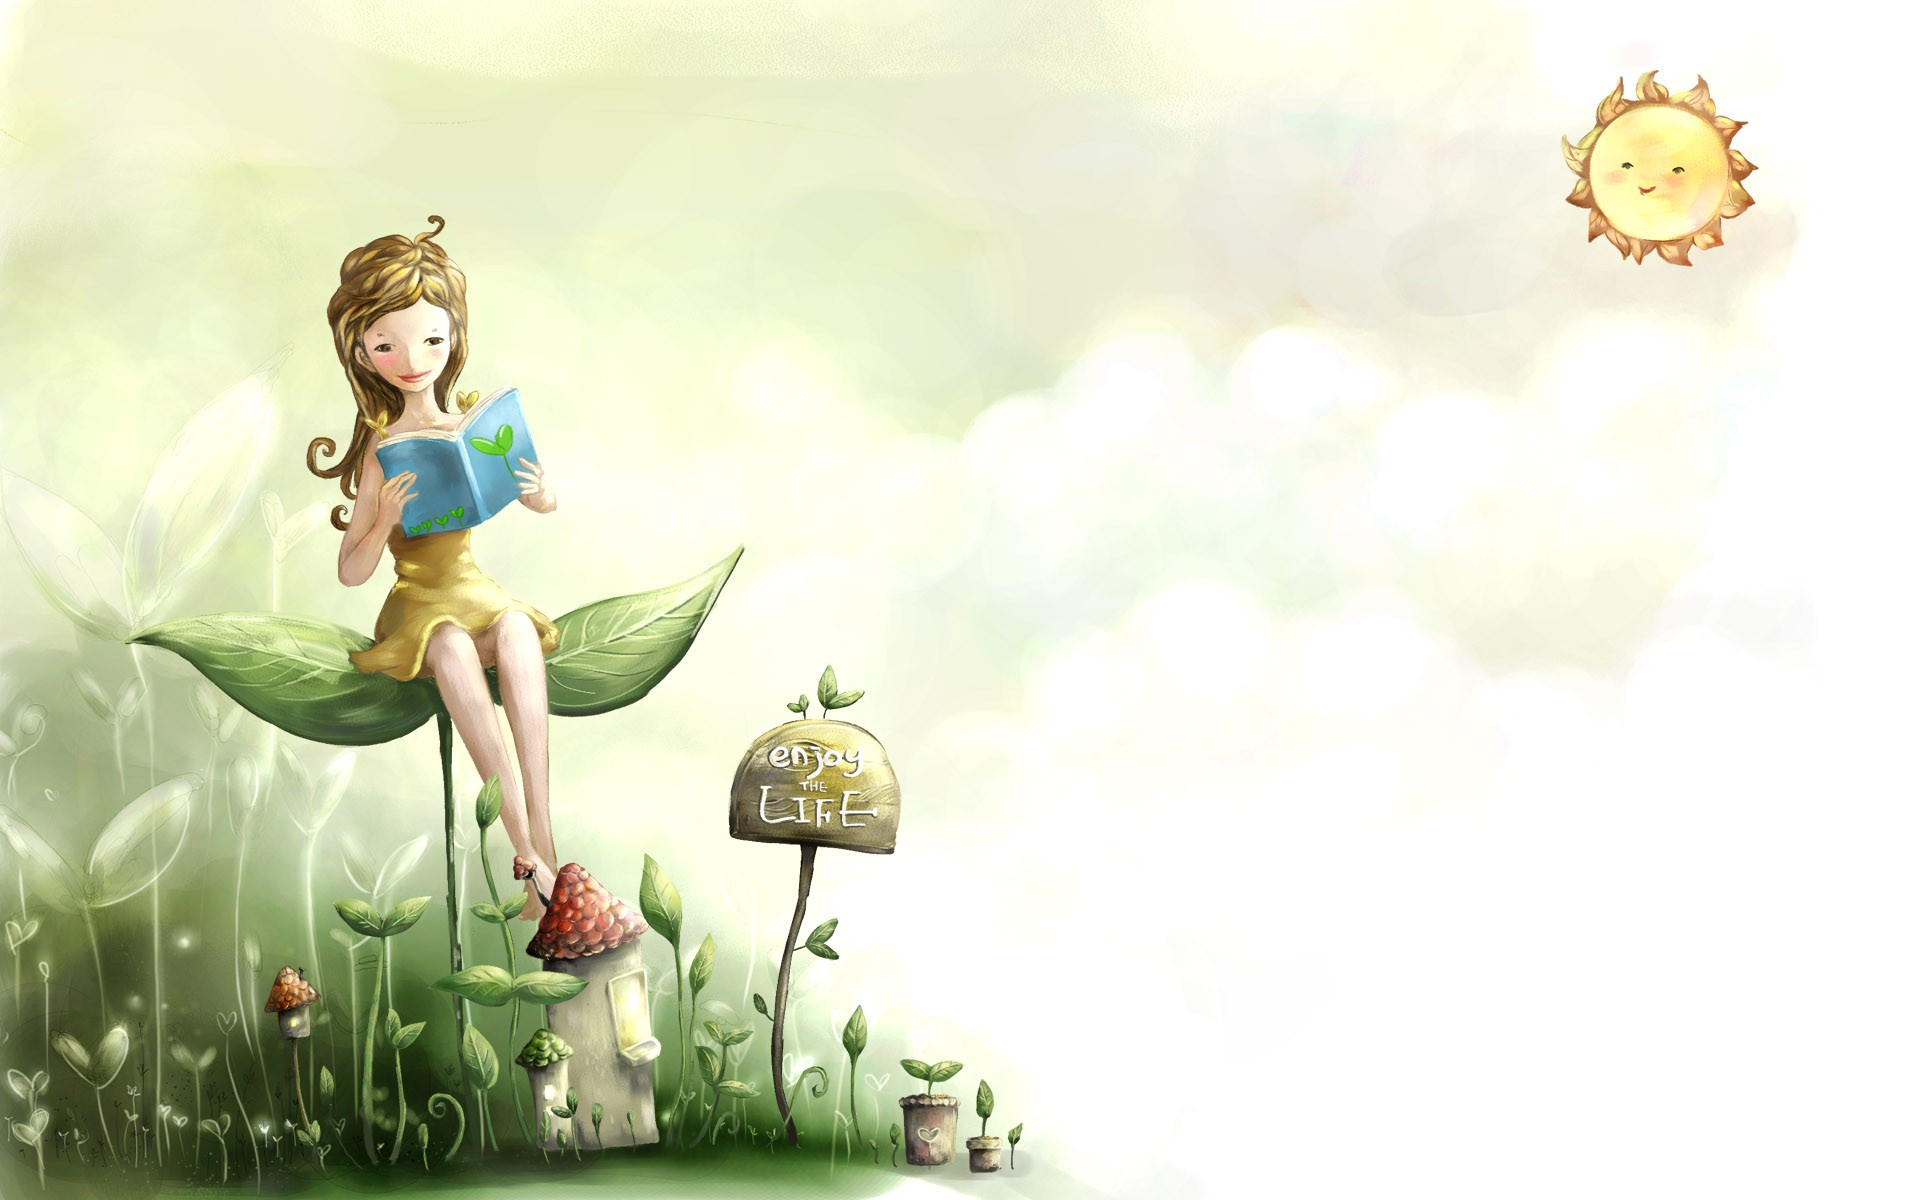 Cartoon Cute Wallpaper Laptop Green 11108 Wallpaper Cool 1920x1200